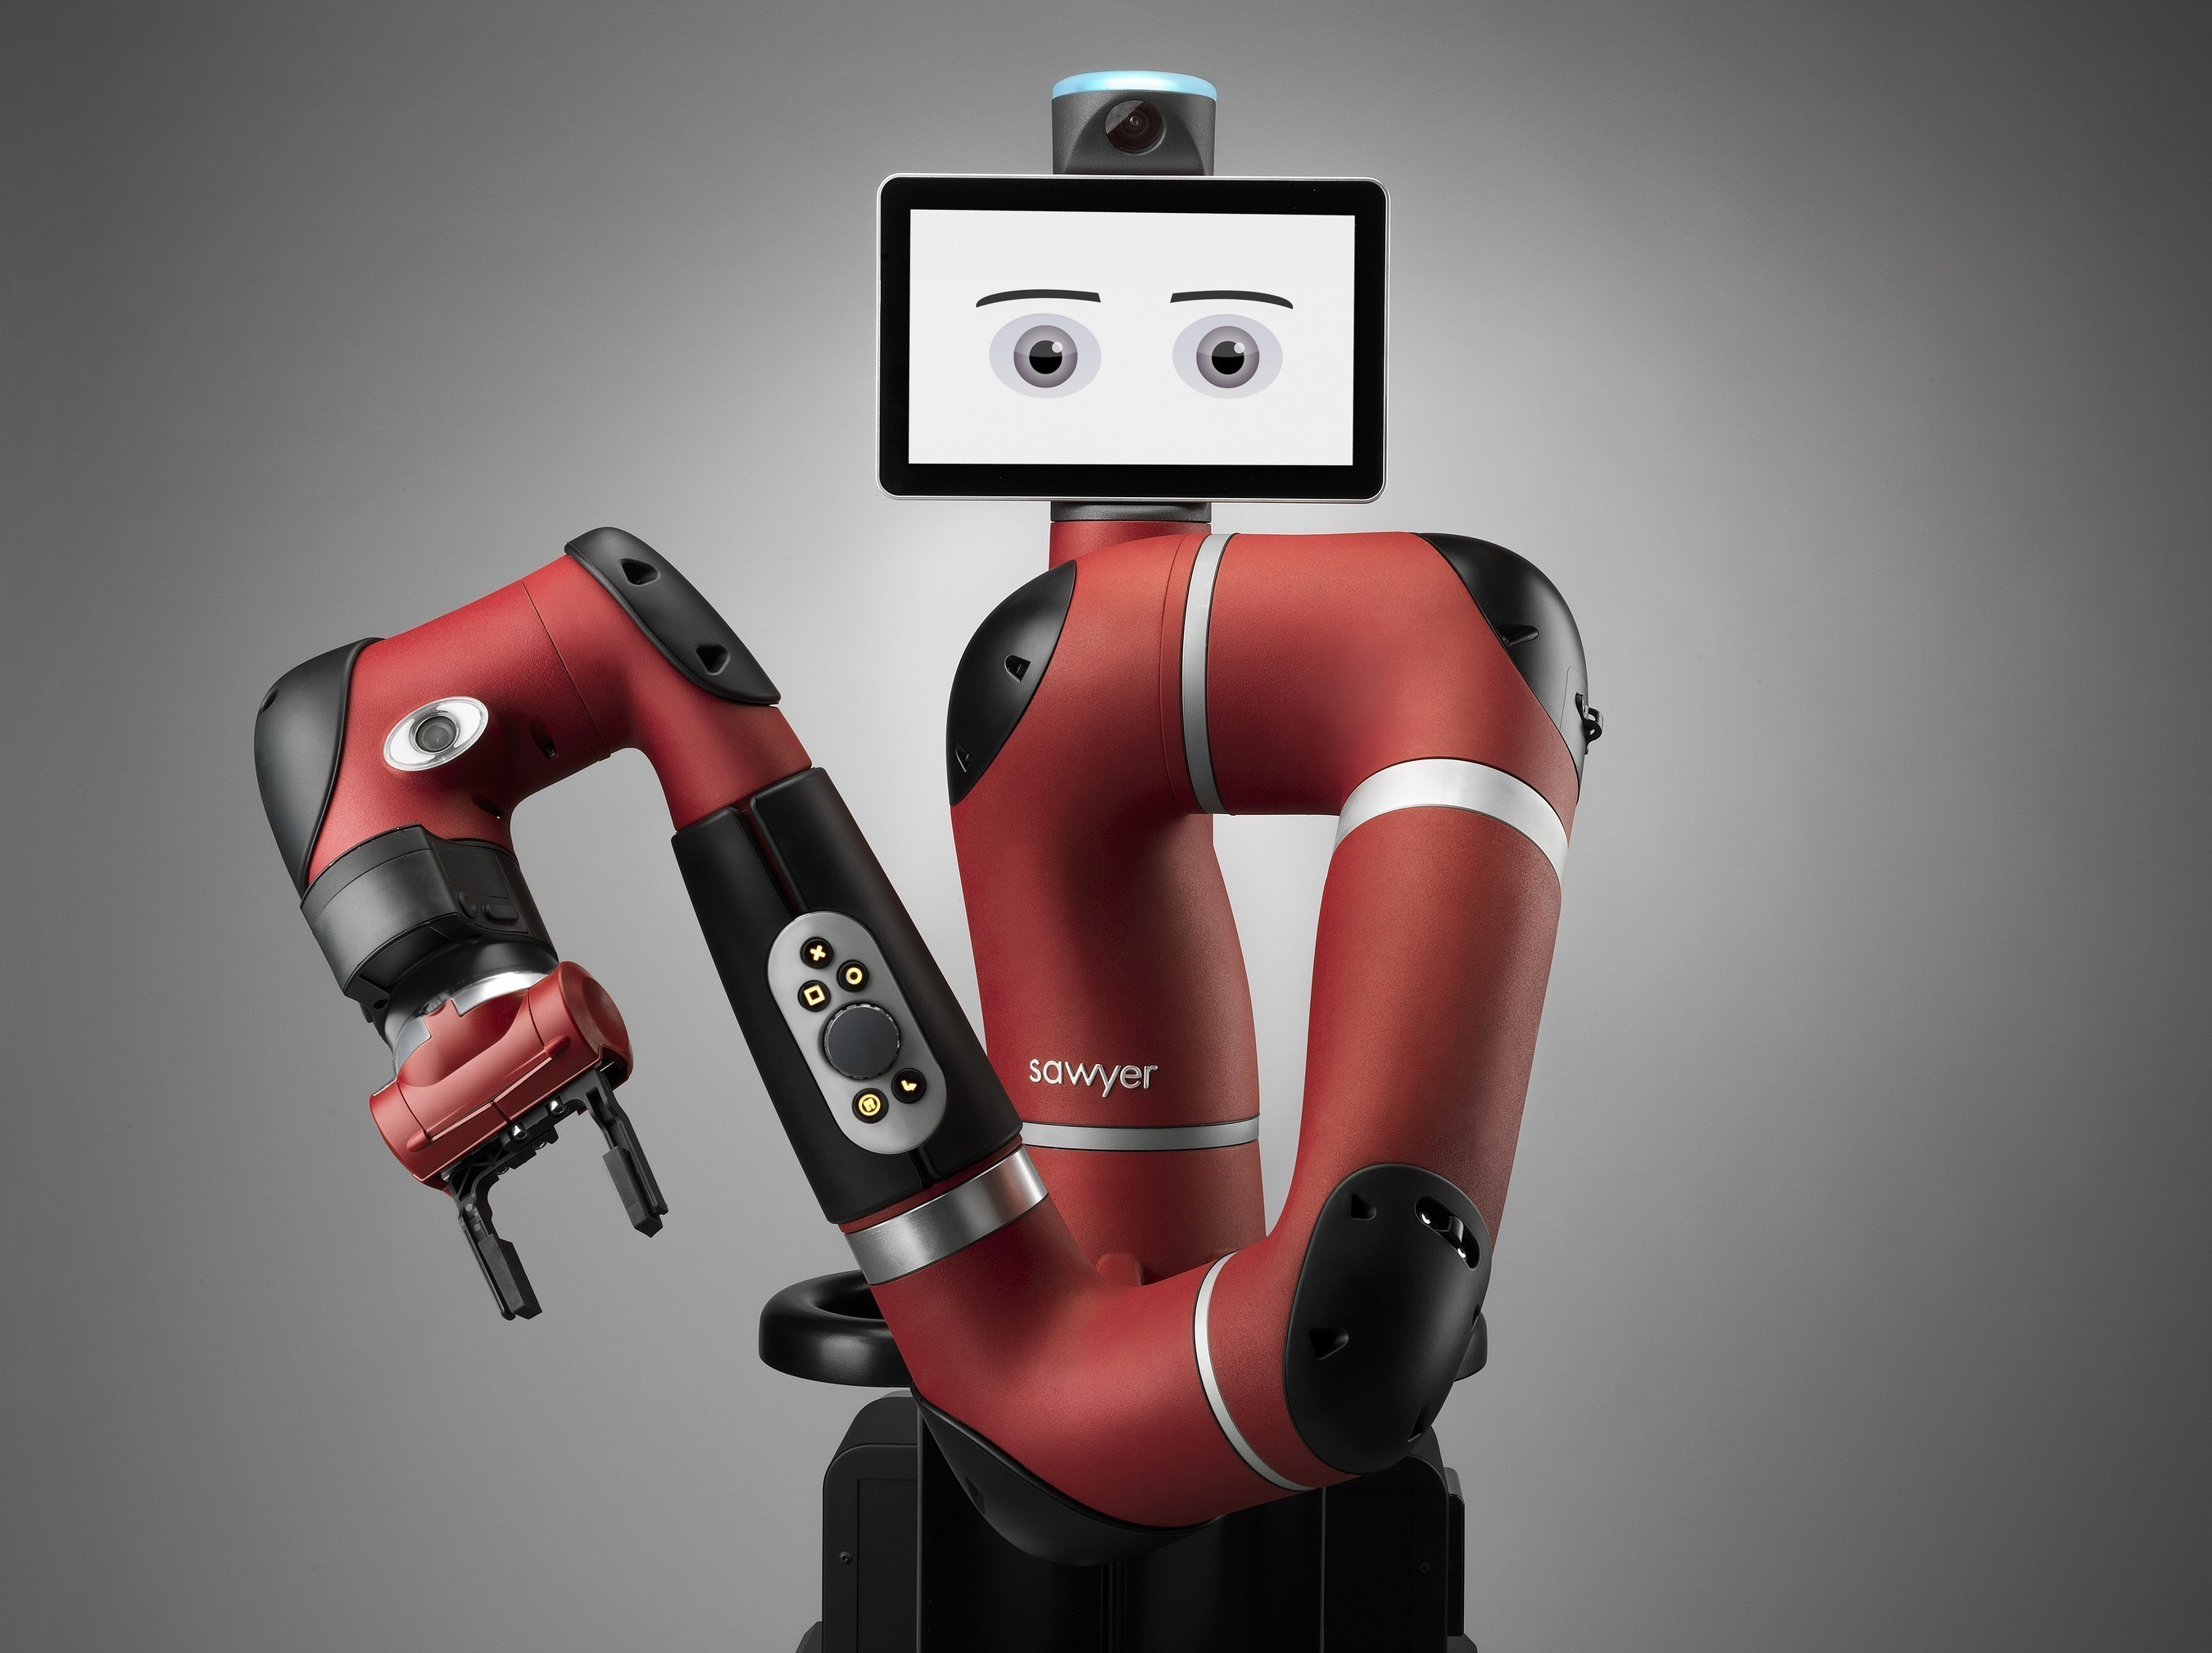 Rethink Robotics Sawyer Robot